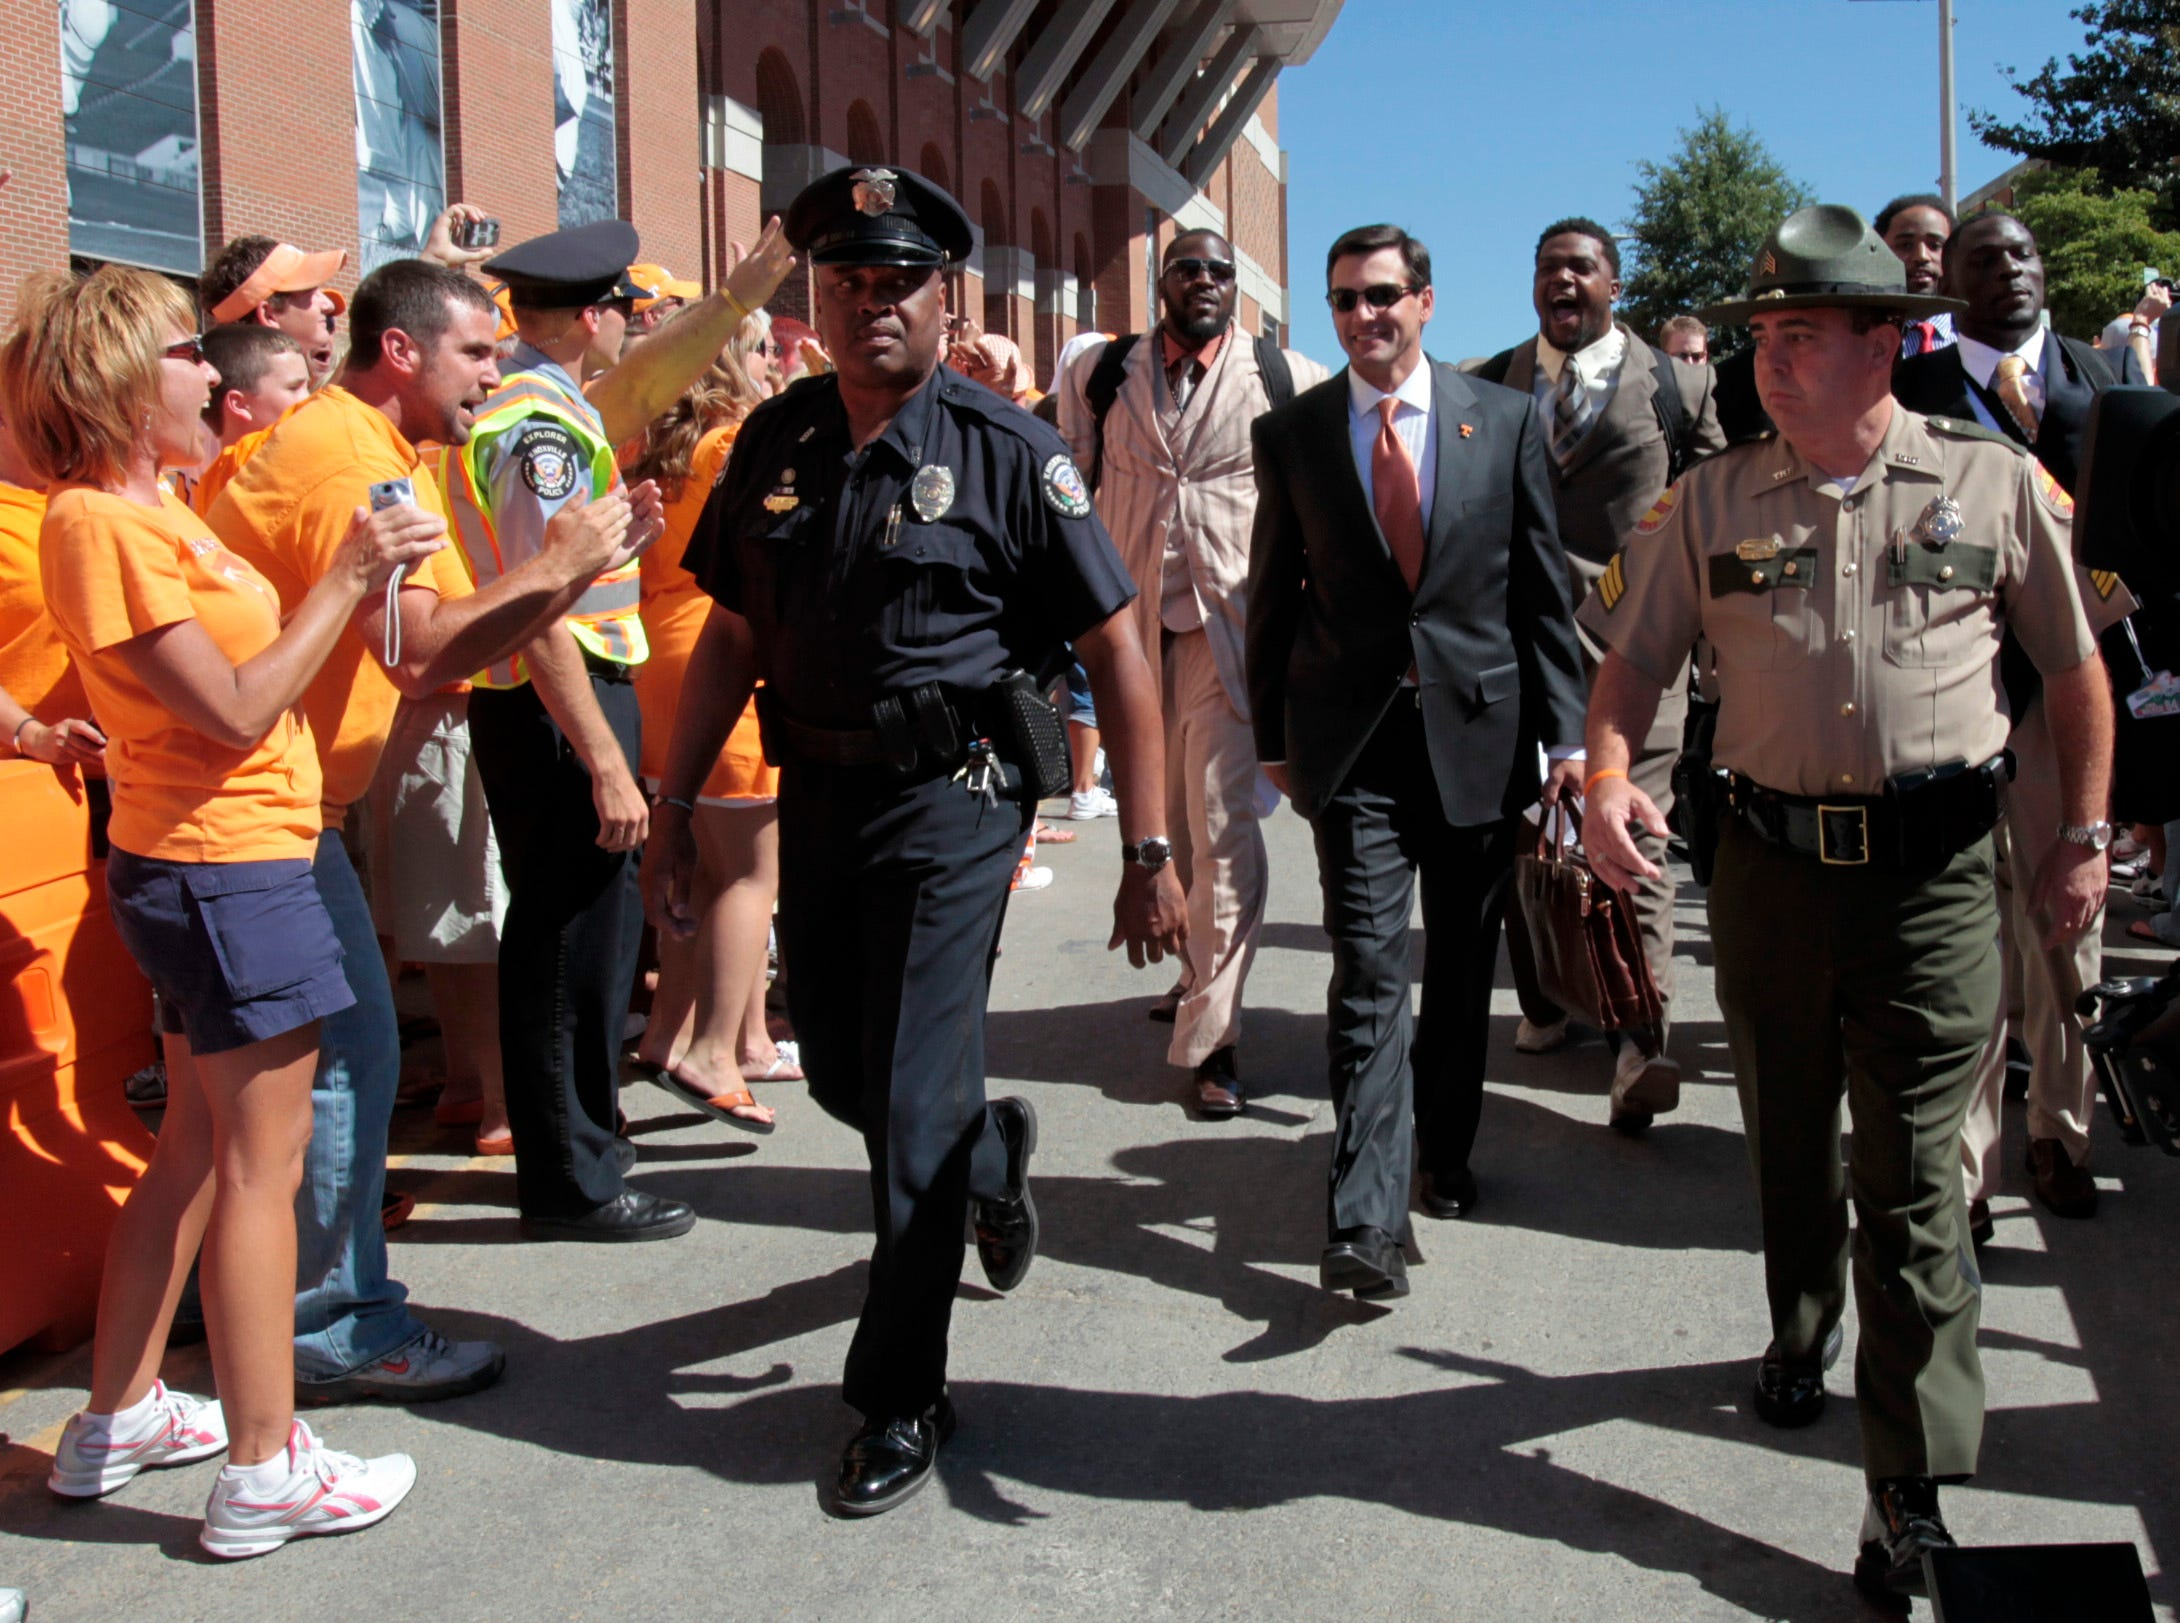 Tennessee coach Derek Dooley, center, participates in his first Vol Walk before the UT Martin game Saturday, Sept. 4, 2010 at Neyland Stadium. The Vols' season opener was a 50 - 0 victory in Derek Dooley's debut as head coach.